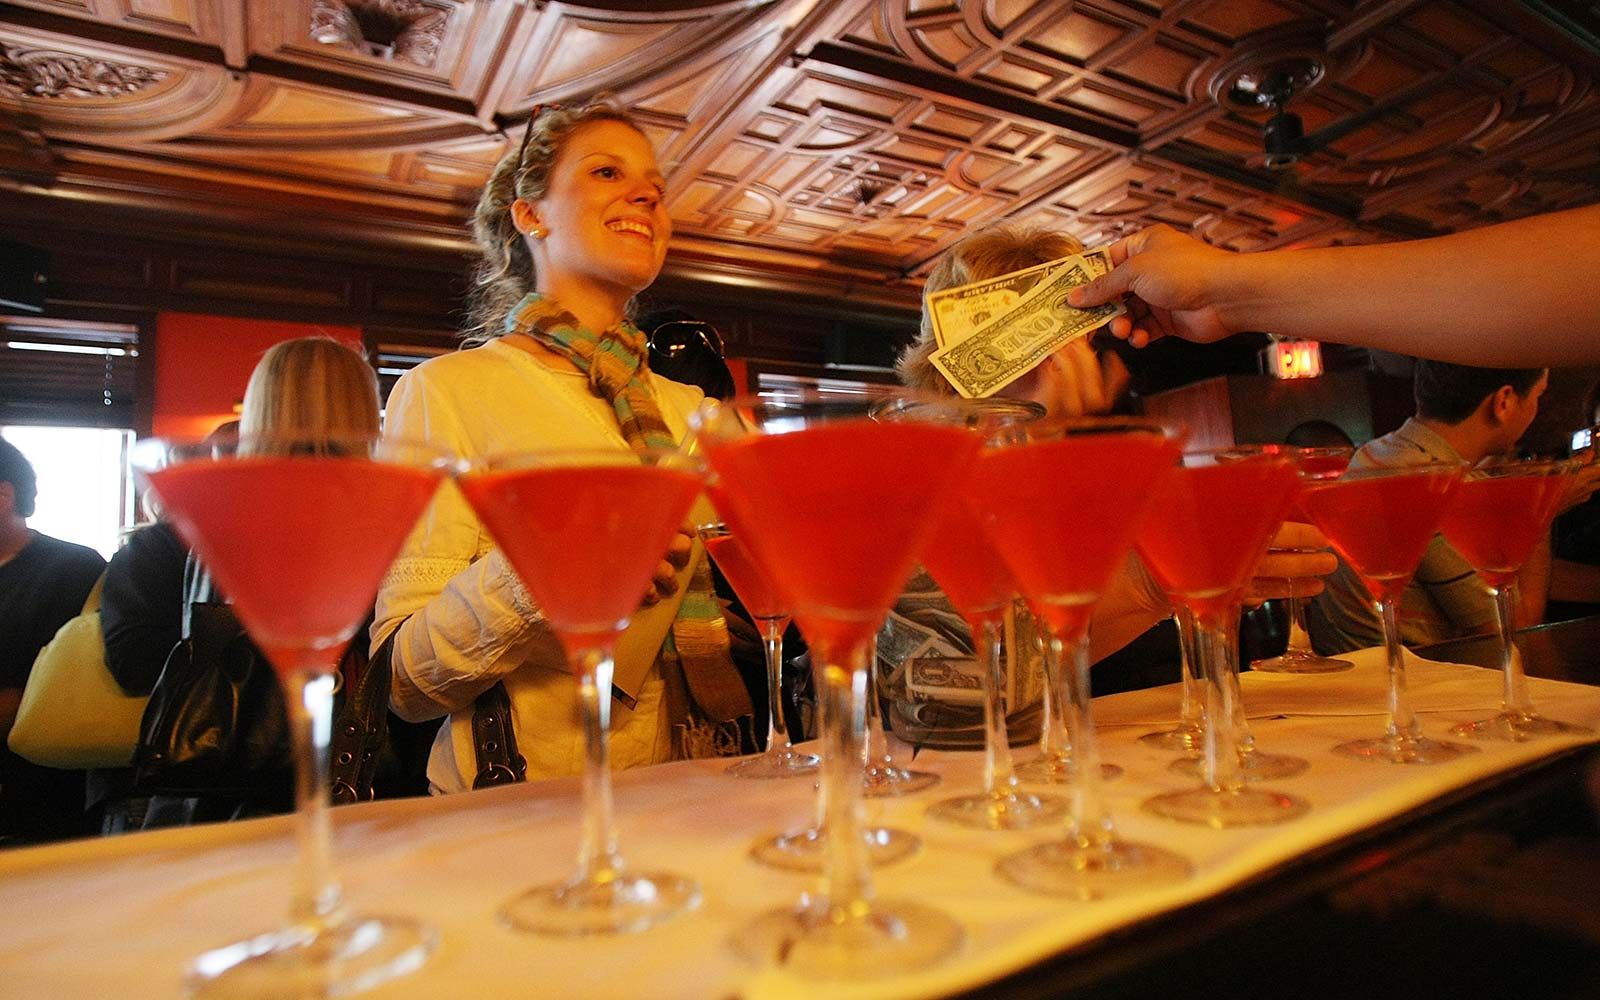 A participant buys a Cosmopolitan cocktail at Onieal's Grand Street bar during a 'Sex and the City' tour in New York City. The tour visits over 40 locations from the TV series